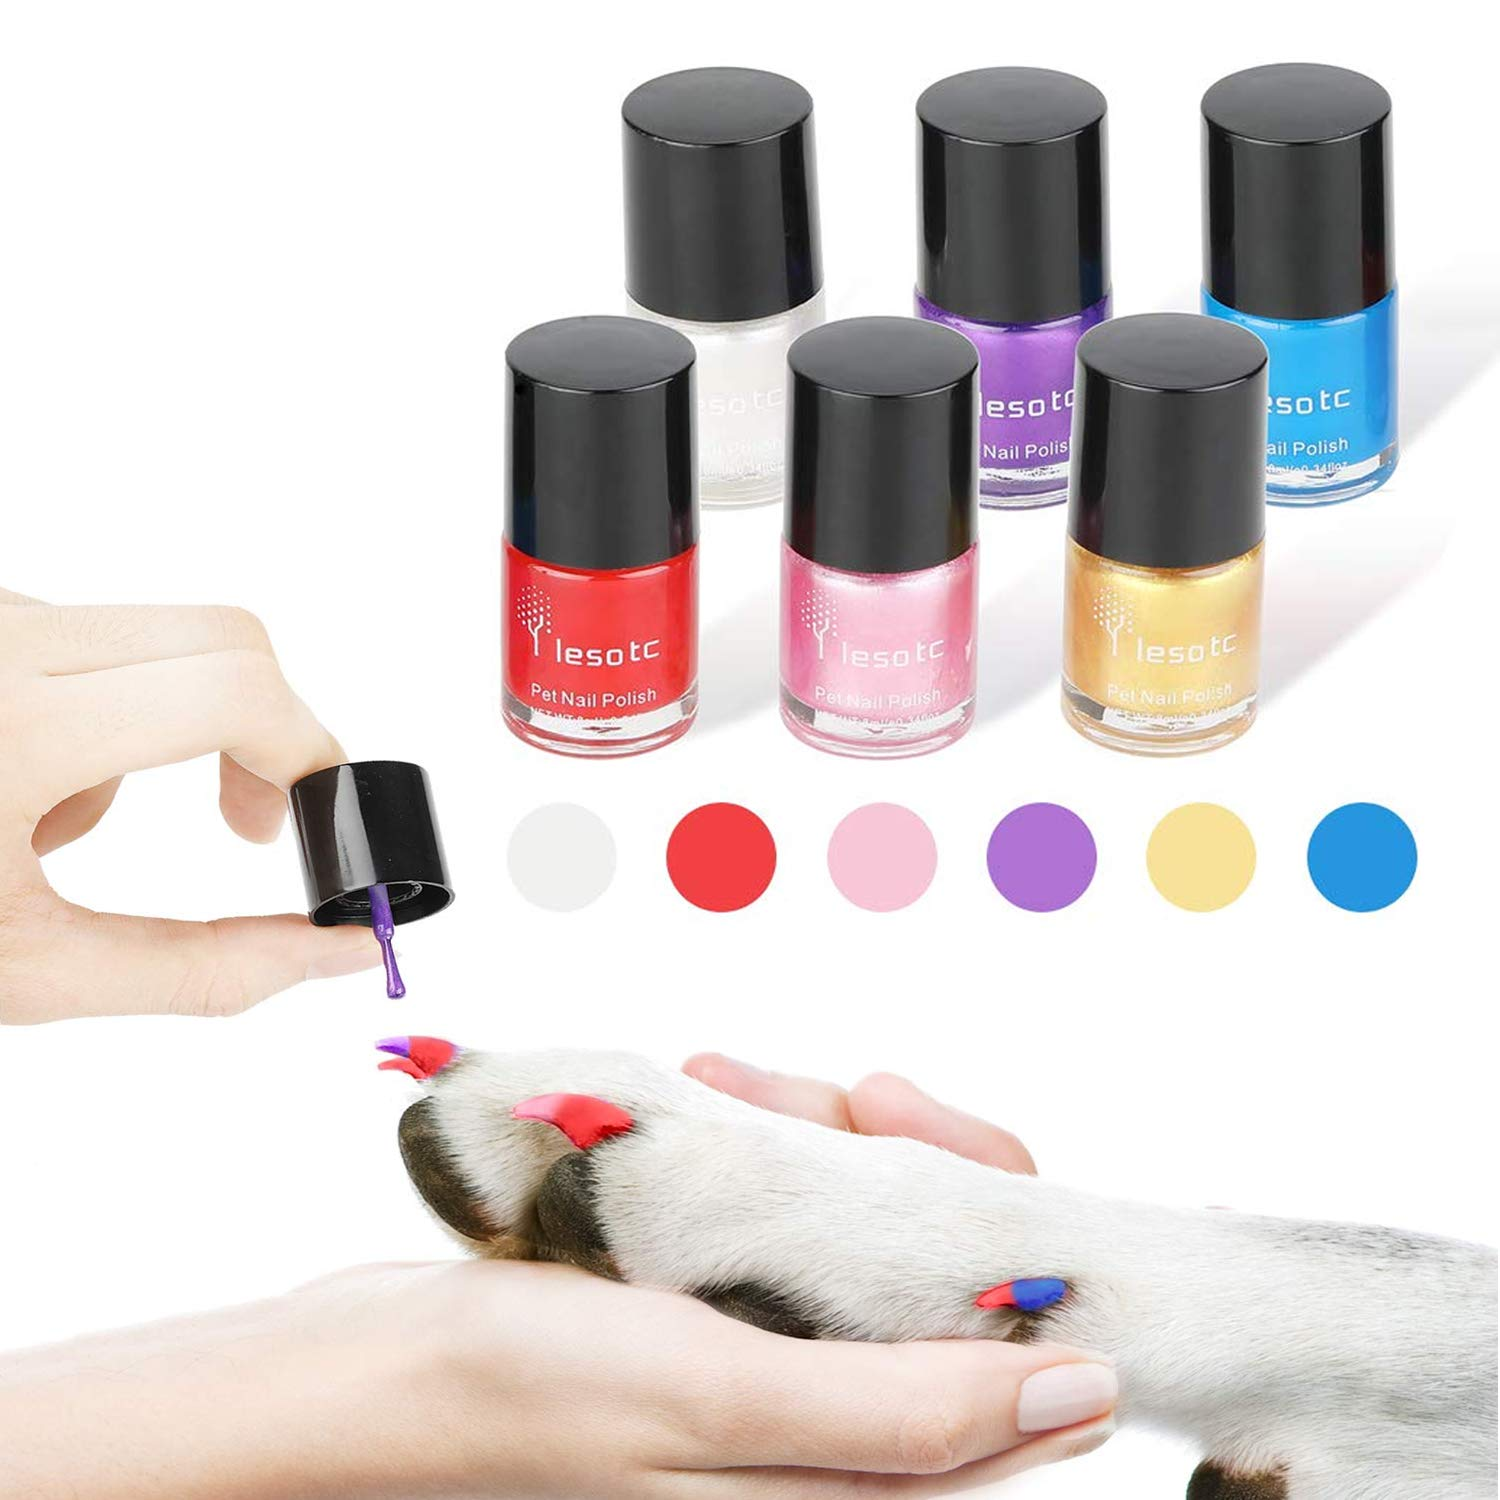 Dog Nail Polish Set, 6 Color Set (Pink, Purple, Red, Gold, Blue, Silver), Non-Toxic Water-Based Pet Nail Polish, Natural and Safe, Suitable for All Pet (Birds, Gerbils, Pigs and Mice), Easy to Remove